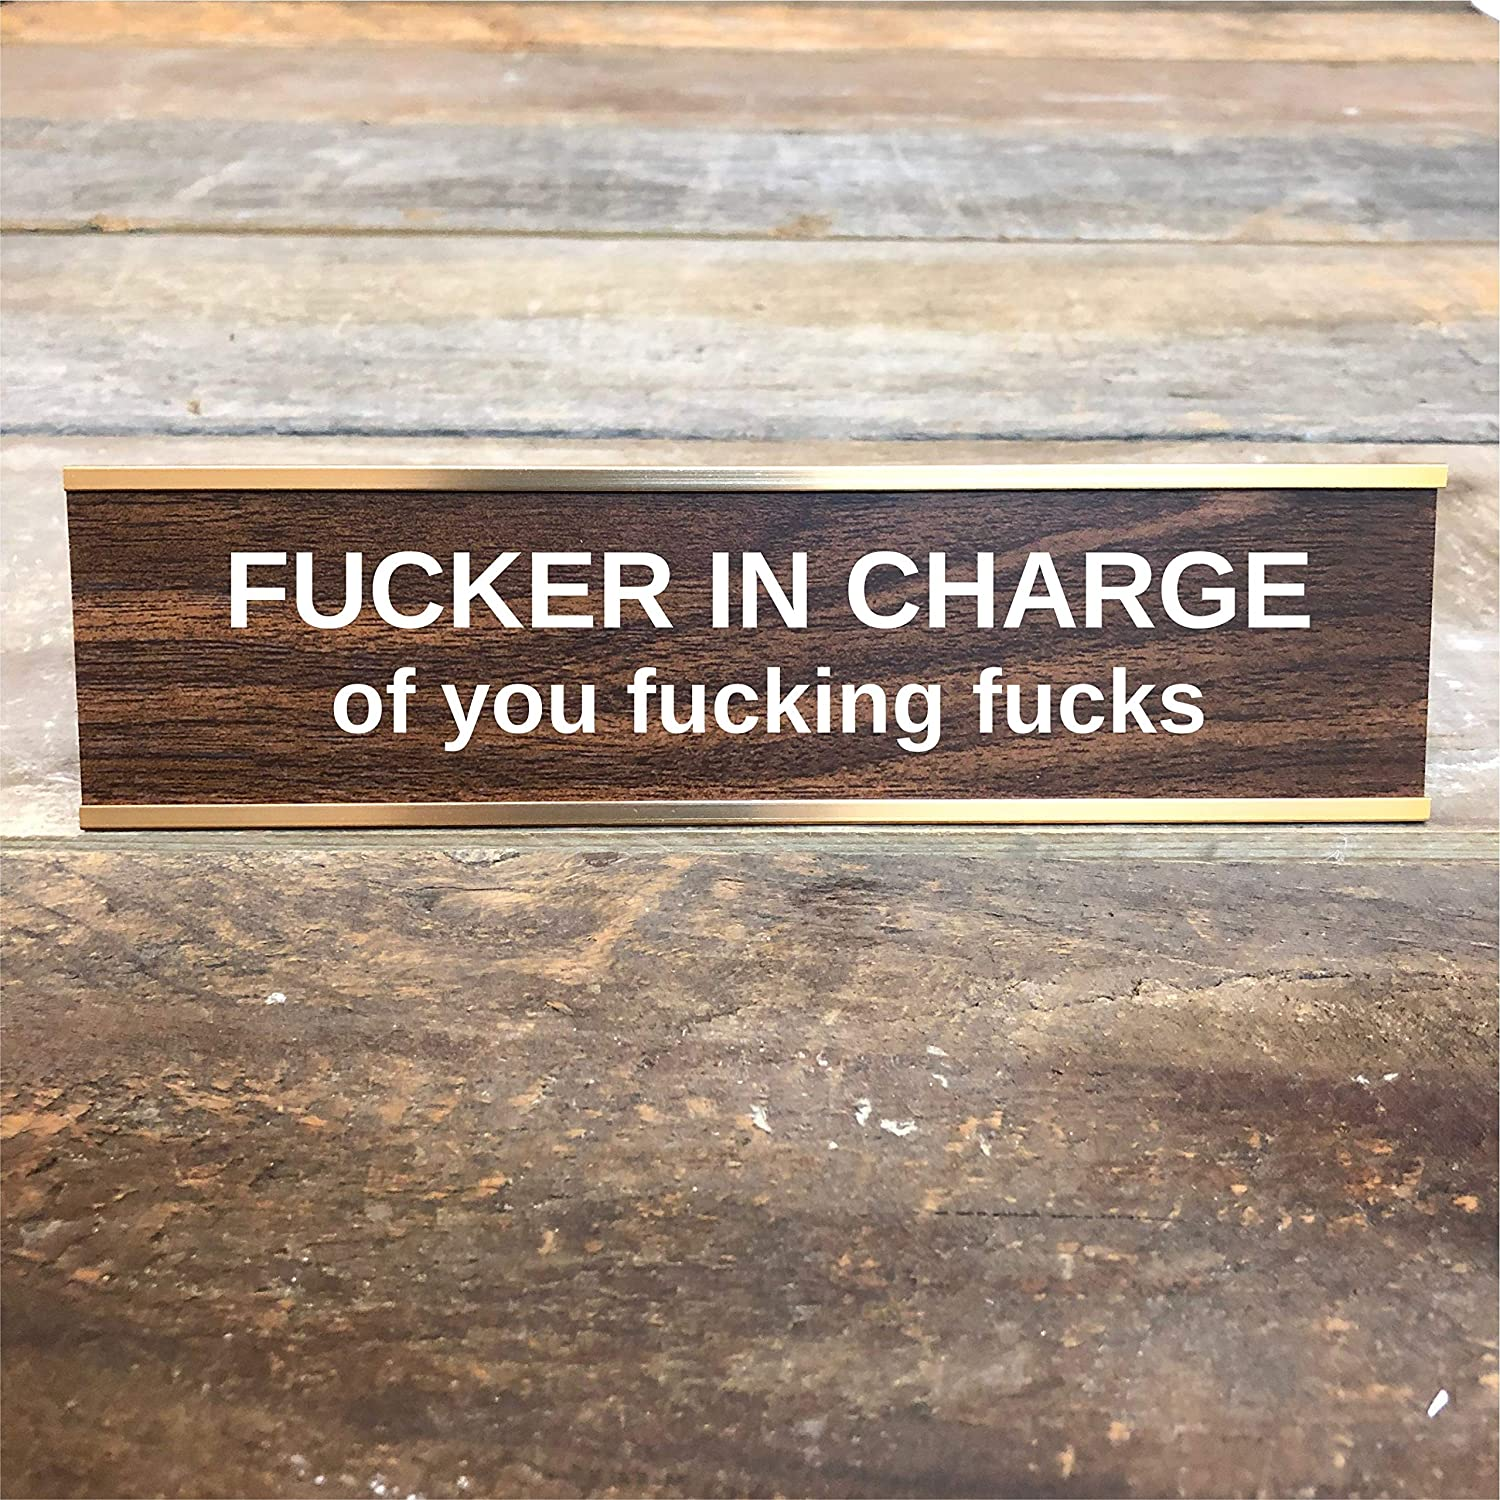 Fucker in Charge of You Fucking Fucks Desk Sign - Funny Office Desk Sign - Gag Gift